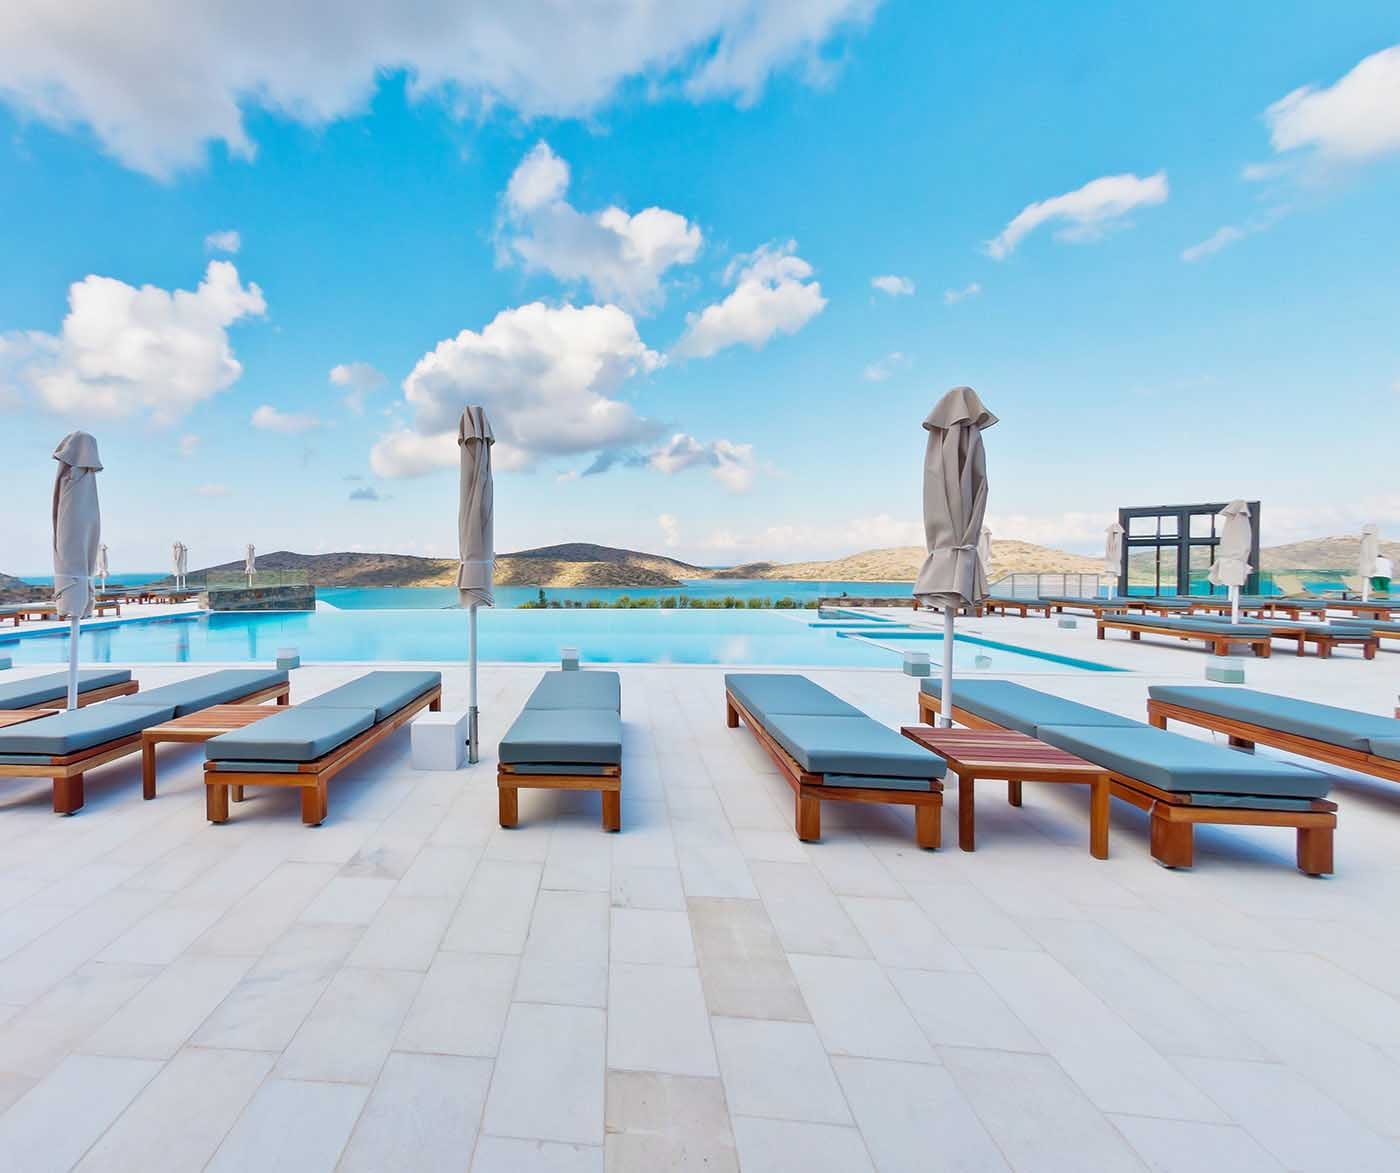 Panormo hotels & resorts, 50% discount for early bookings, Panormo, Rethymnon, Crete, Greece